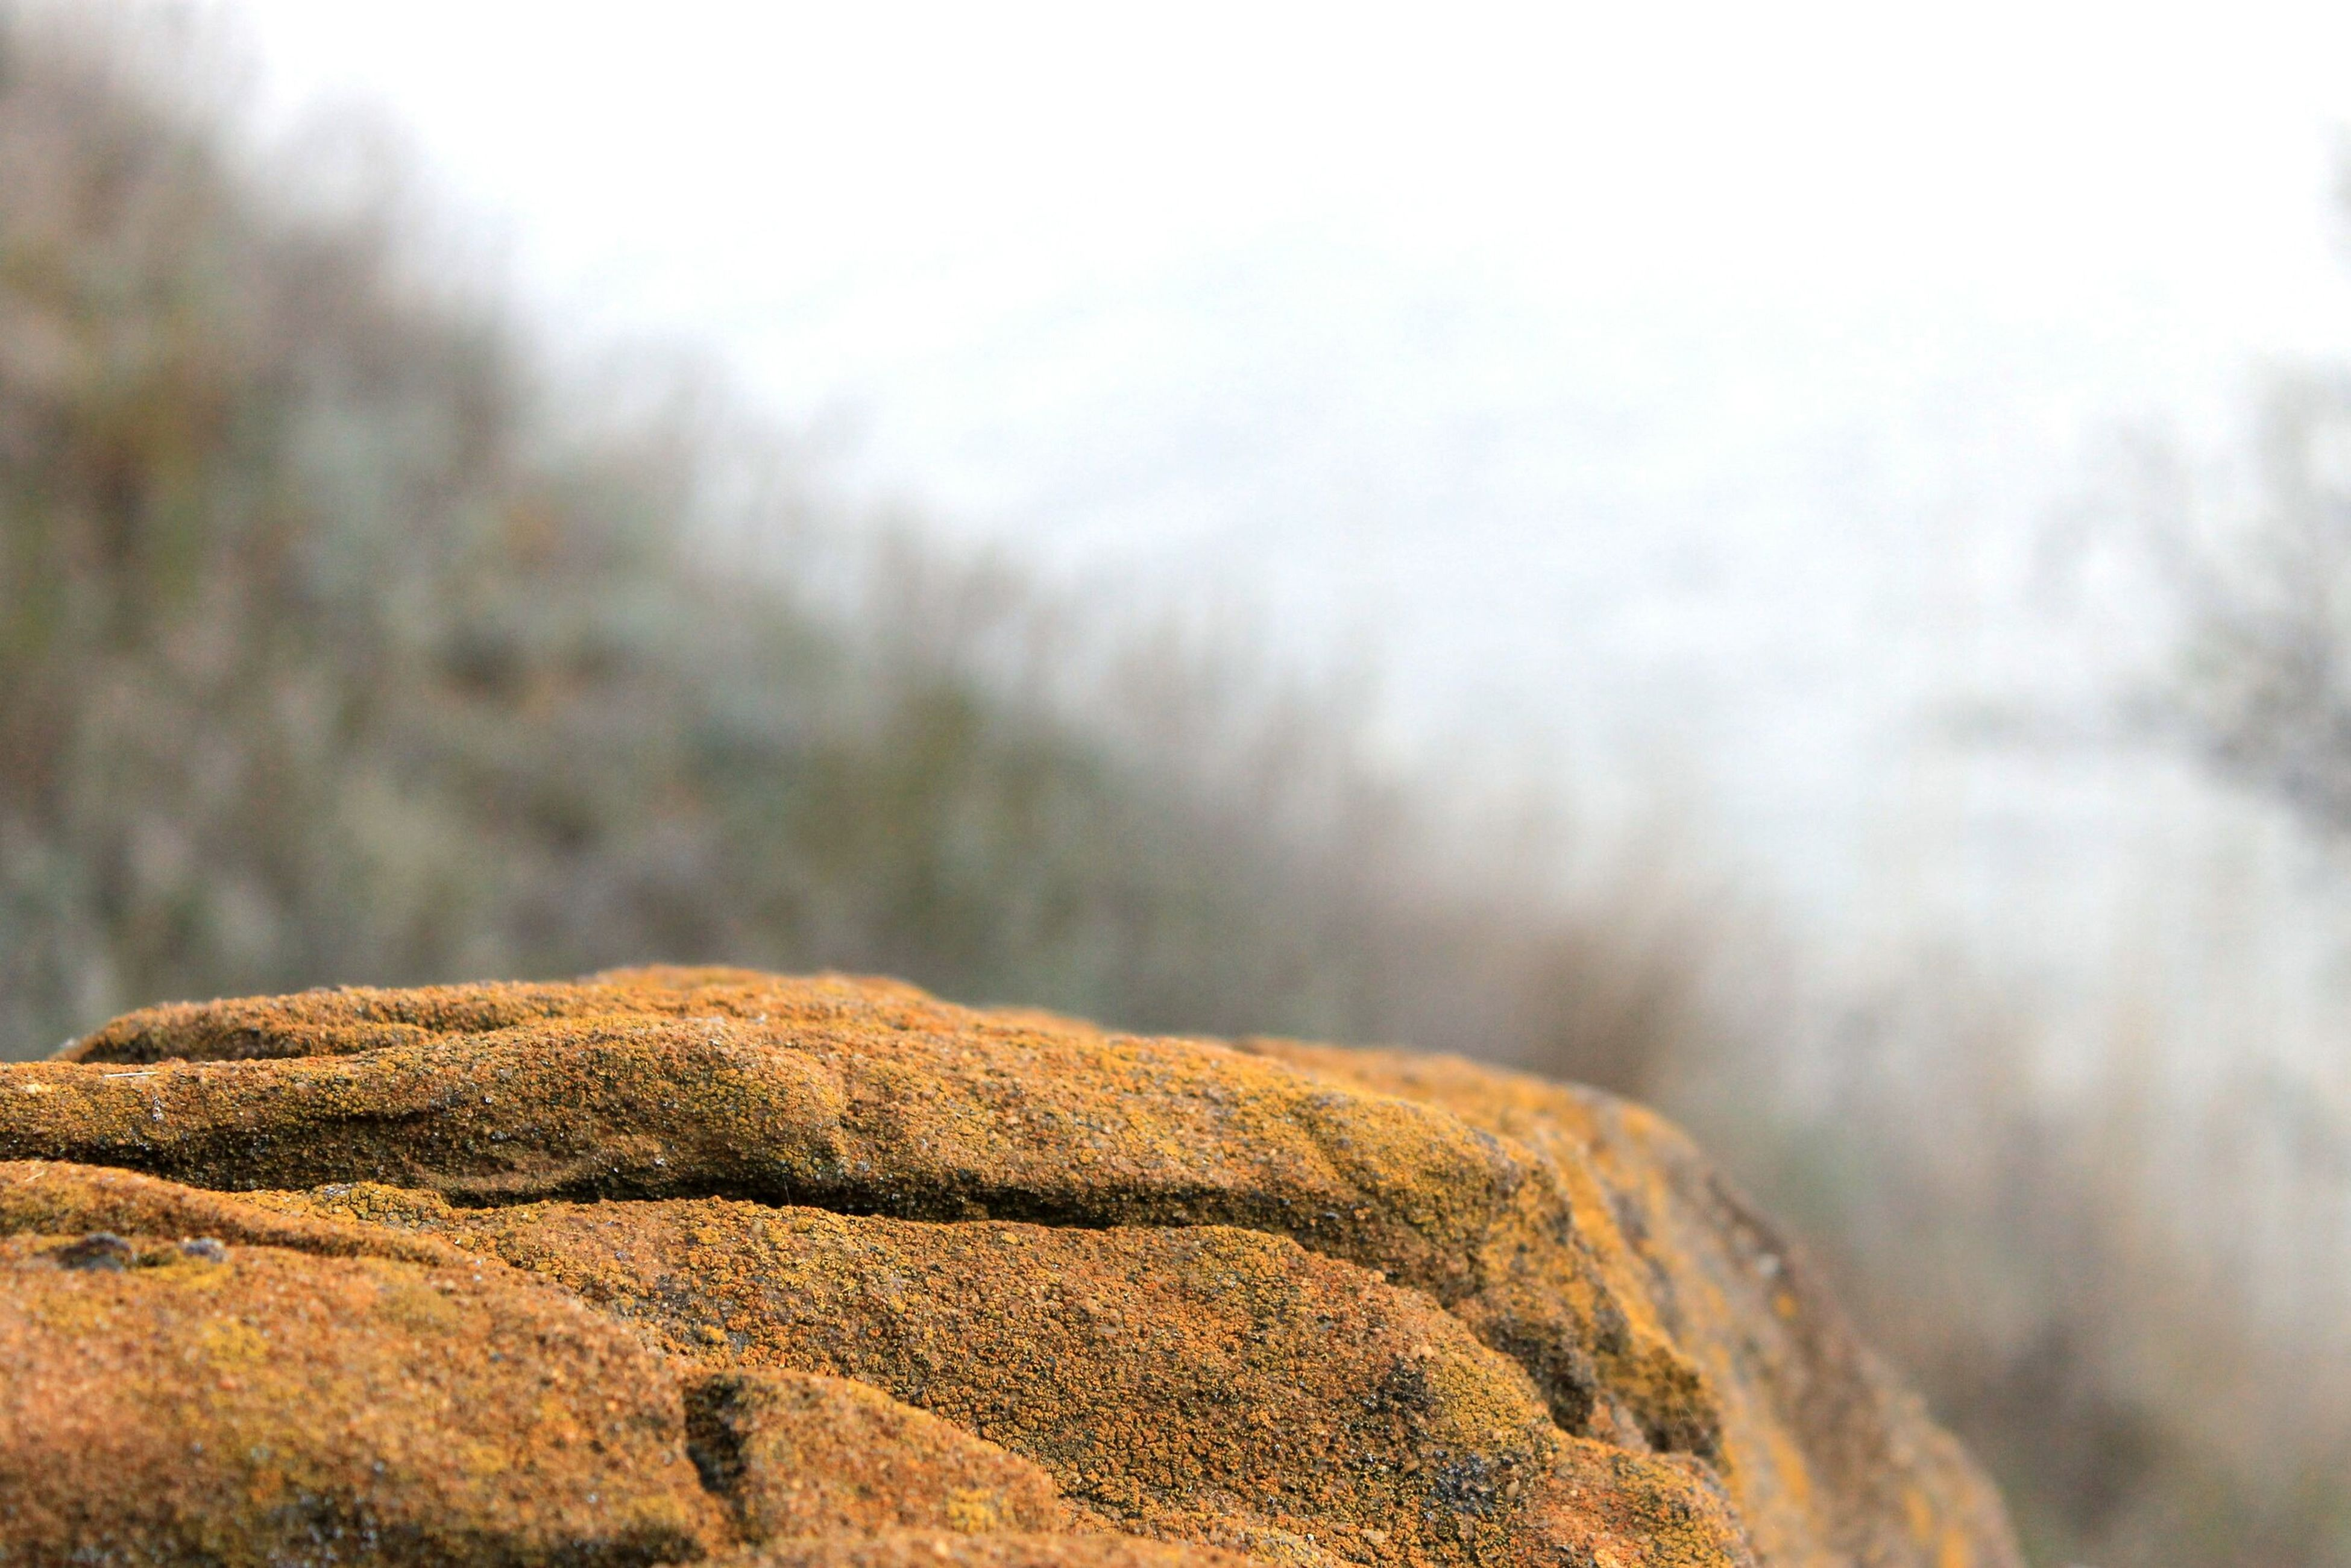 rock - object, focus on foreground, nature, tranquility, tranquil scene, rock, scenics, beauty in nature, rock formation, landscape, close-up, textured, rough, selective focus, non-urban scene, outdoors, day, sky, no people, natural pattern